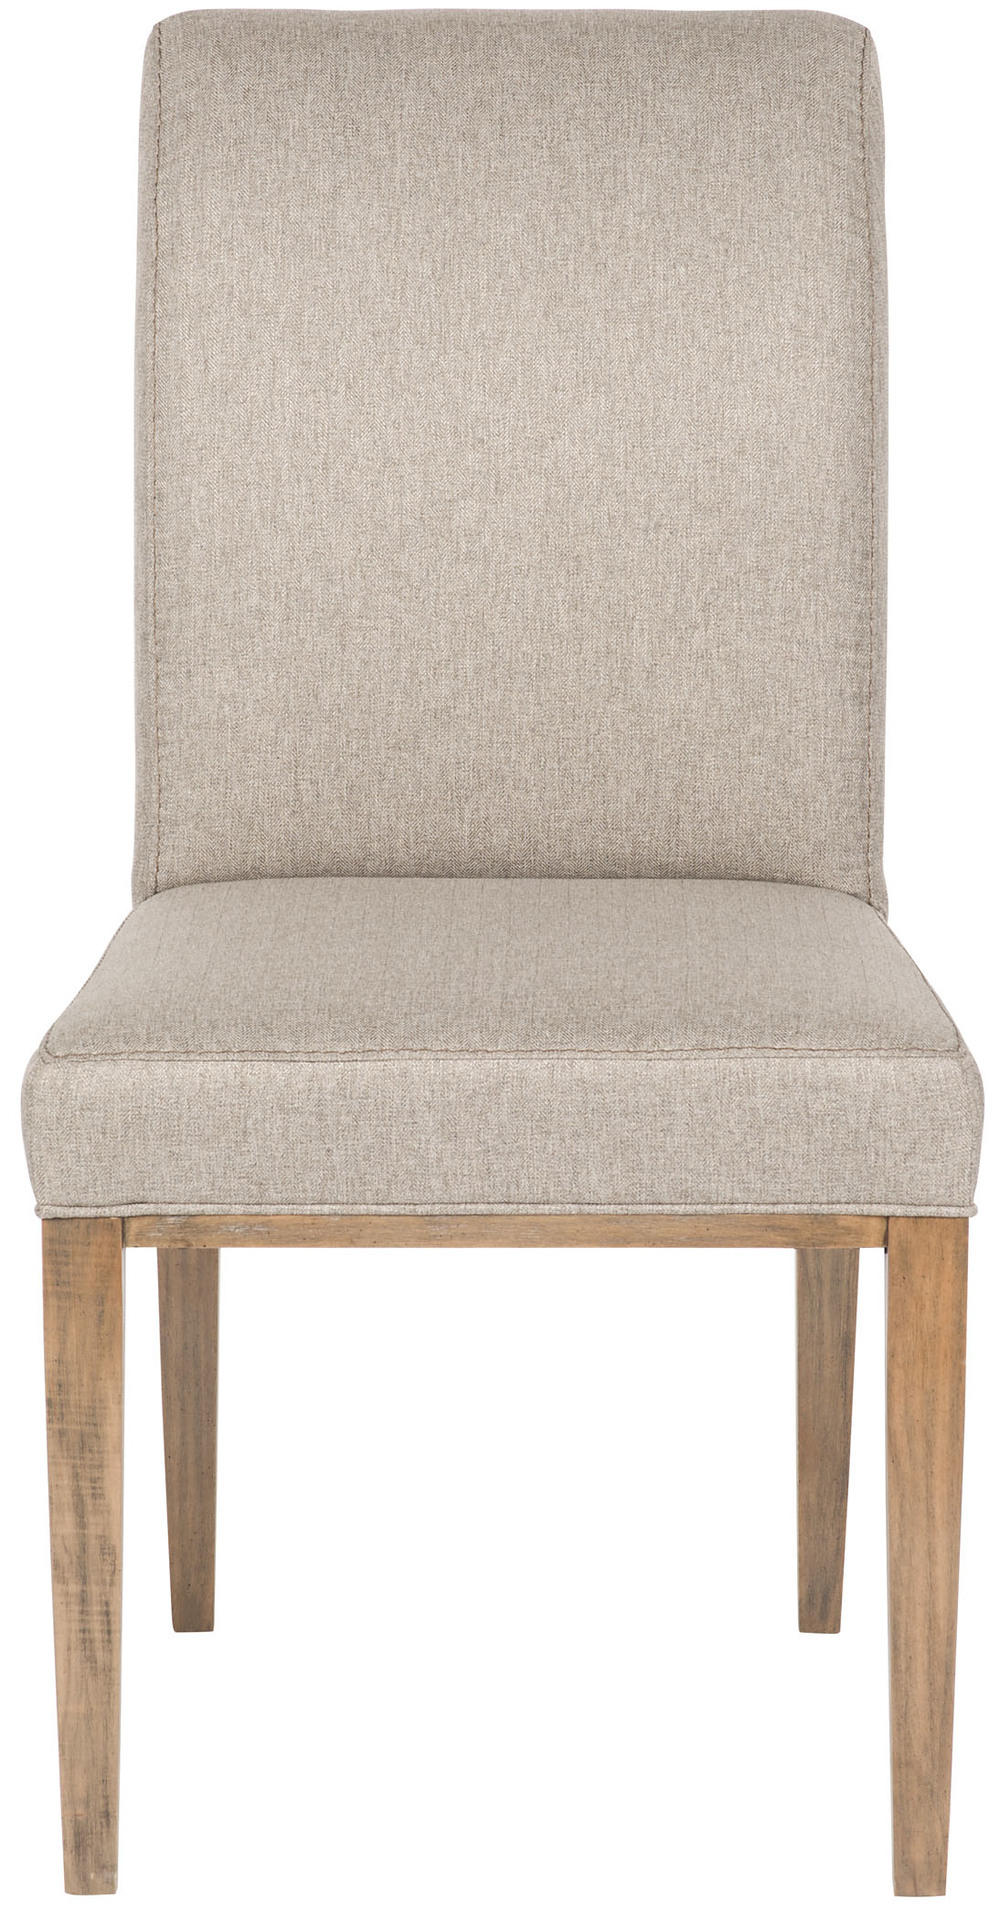 Vanguard Furniture - Felix Side Chair